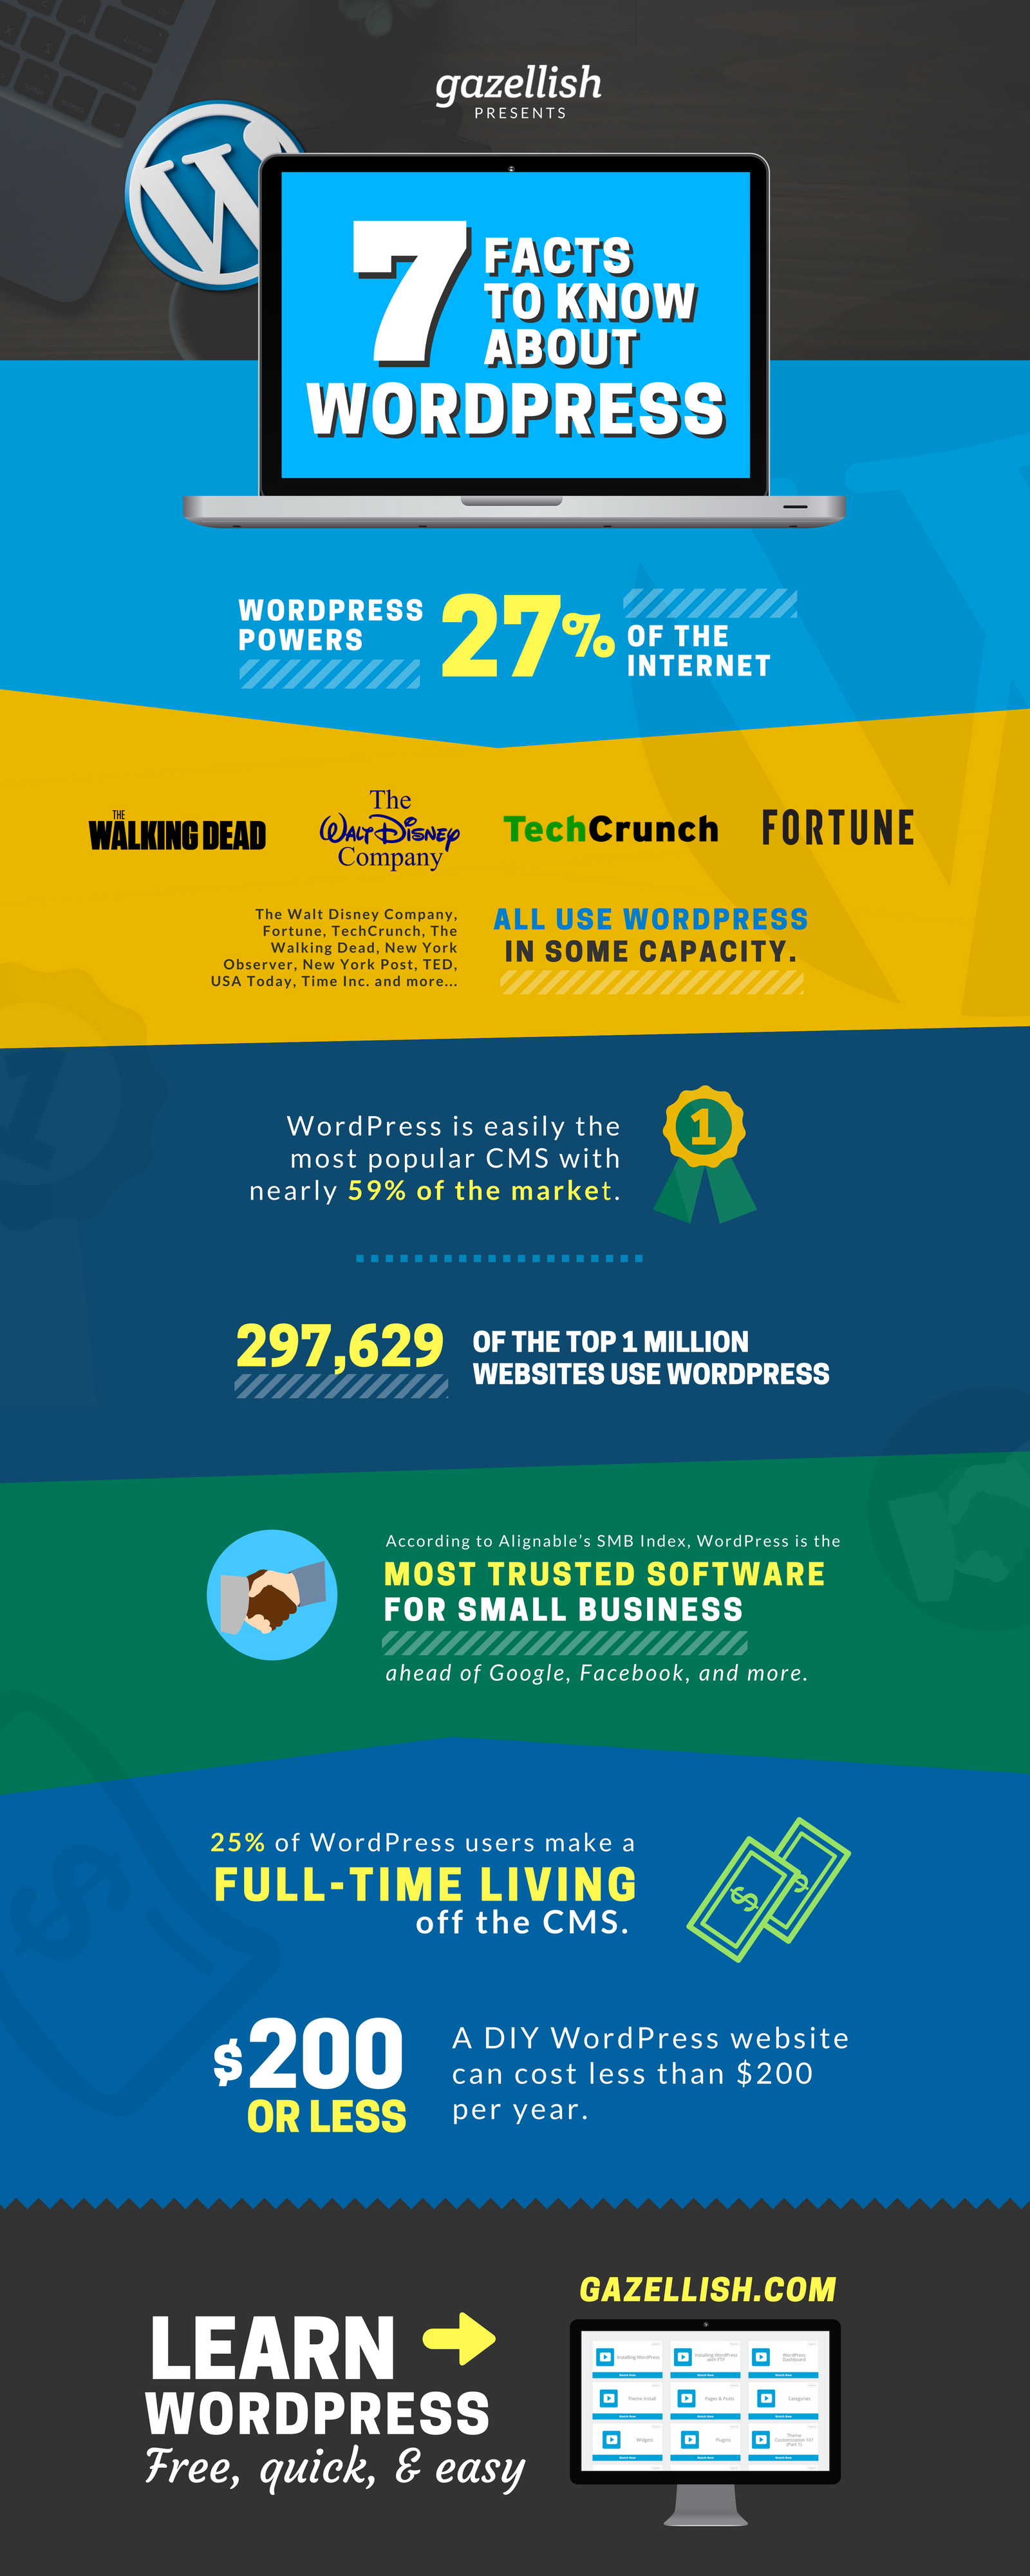 7 Facts to Know About WordPress